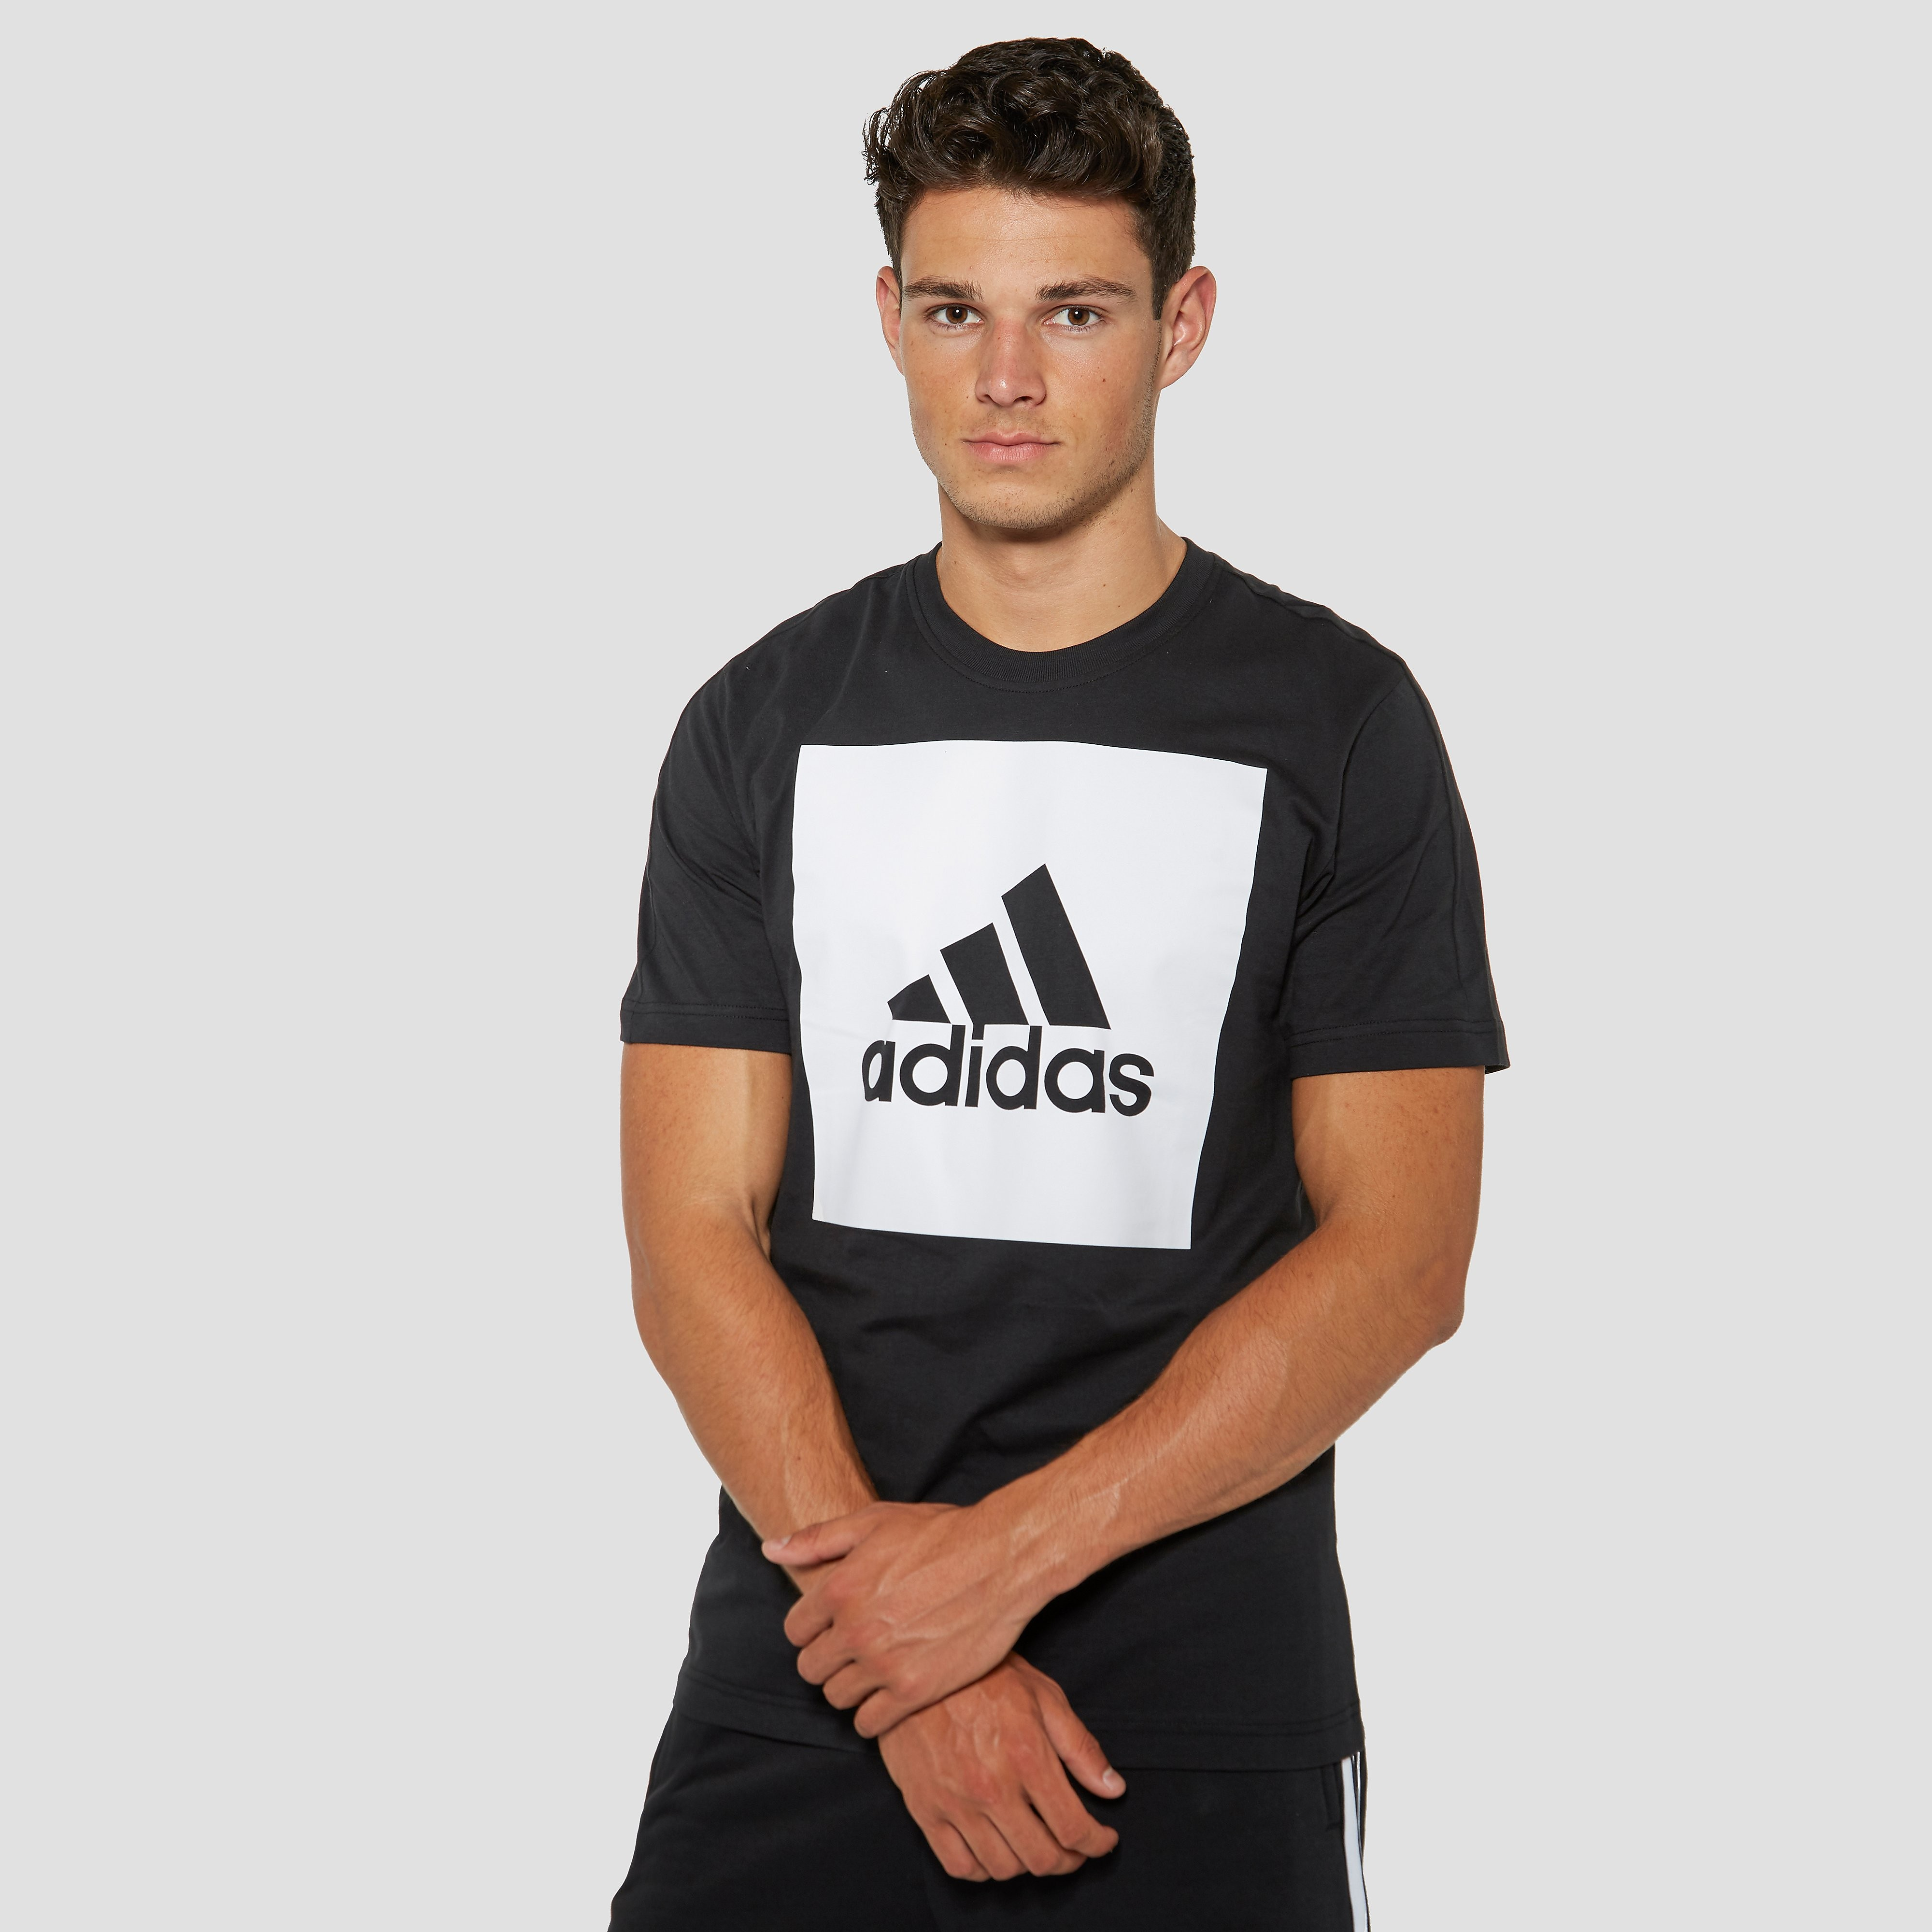 ADIDAS ESSENTIALS BIG LOGO SHIRT ZWART/WIT HEREN